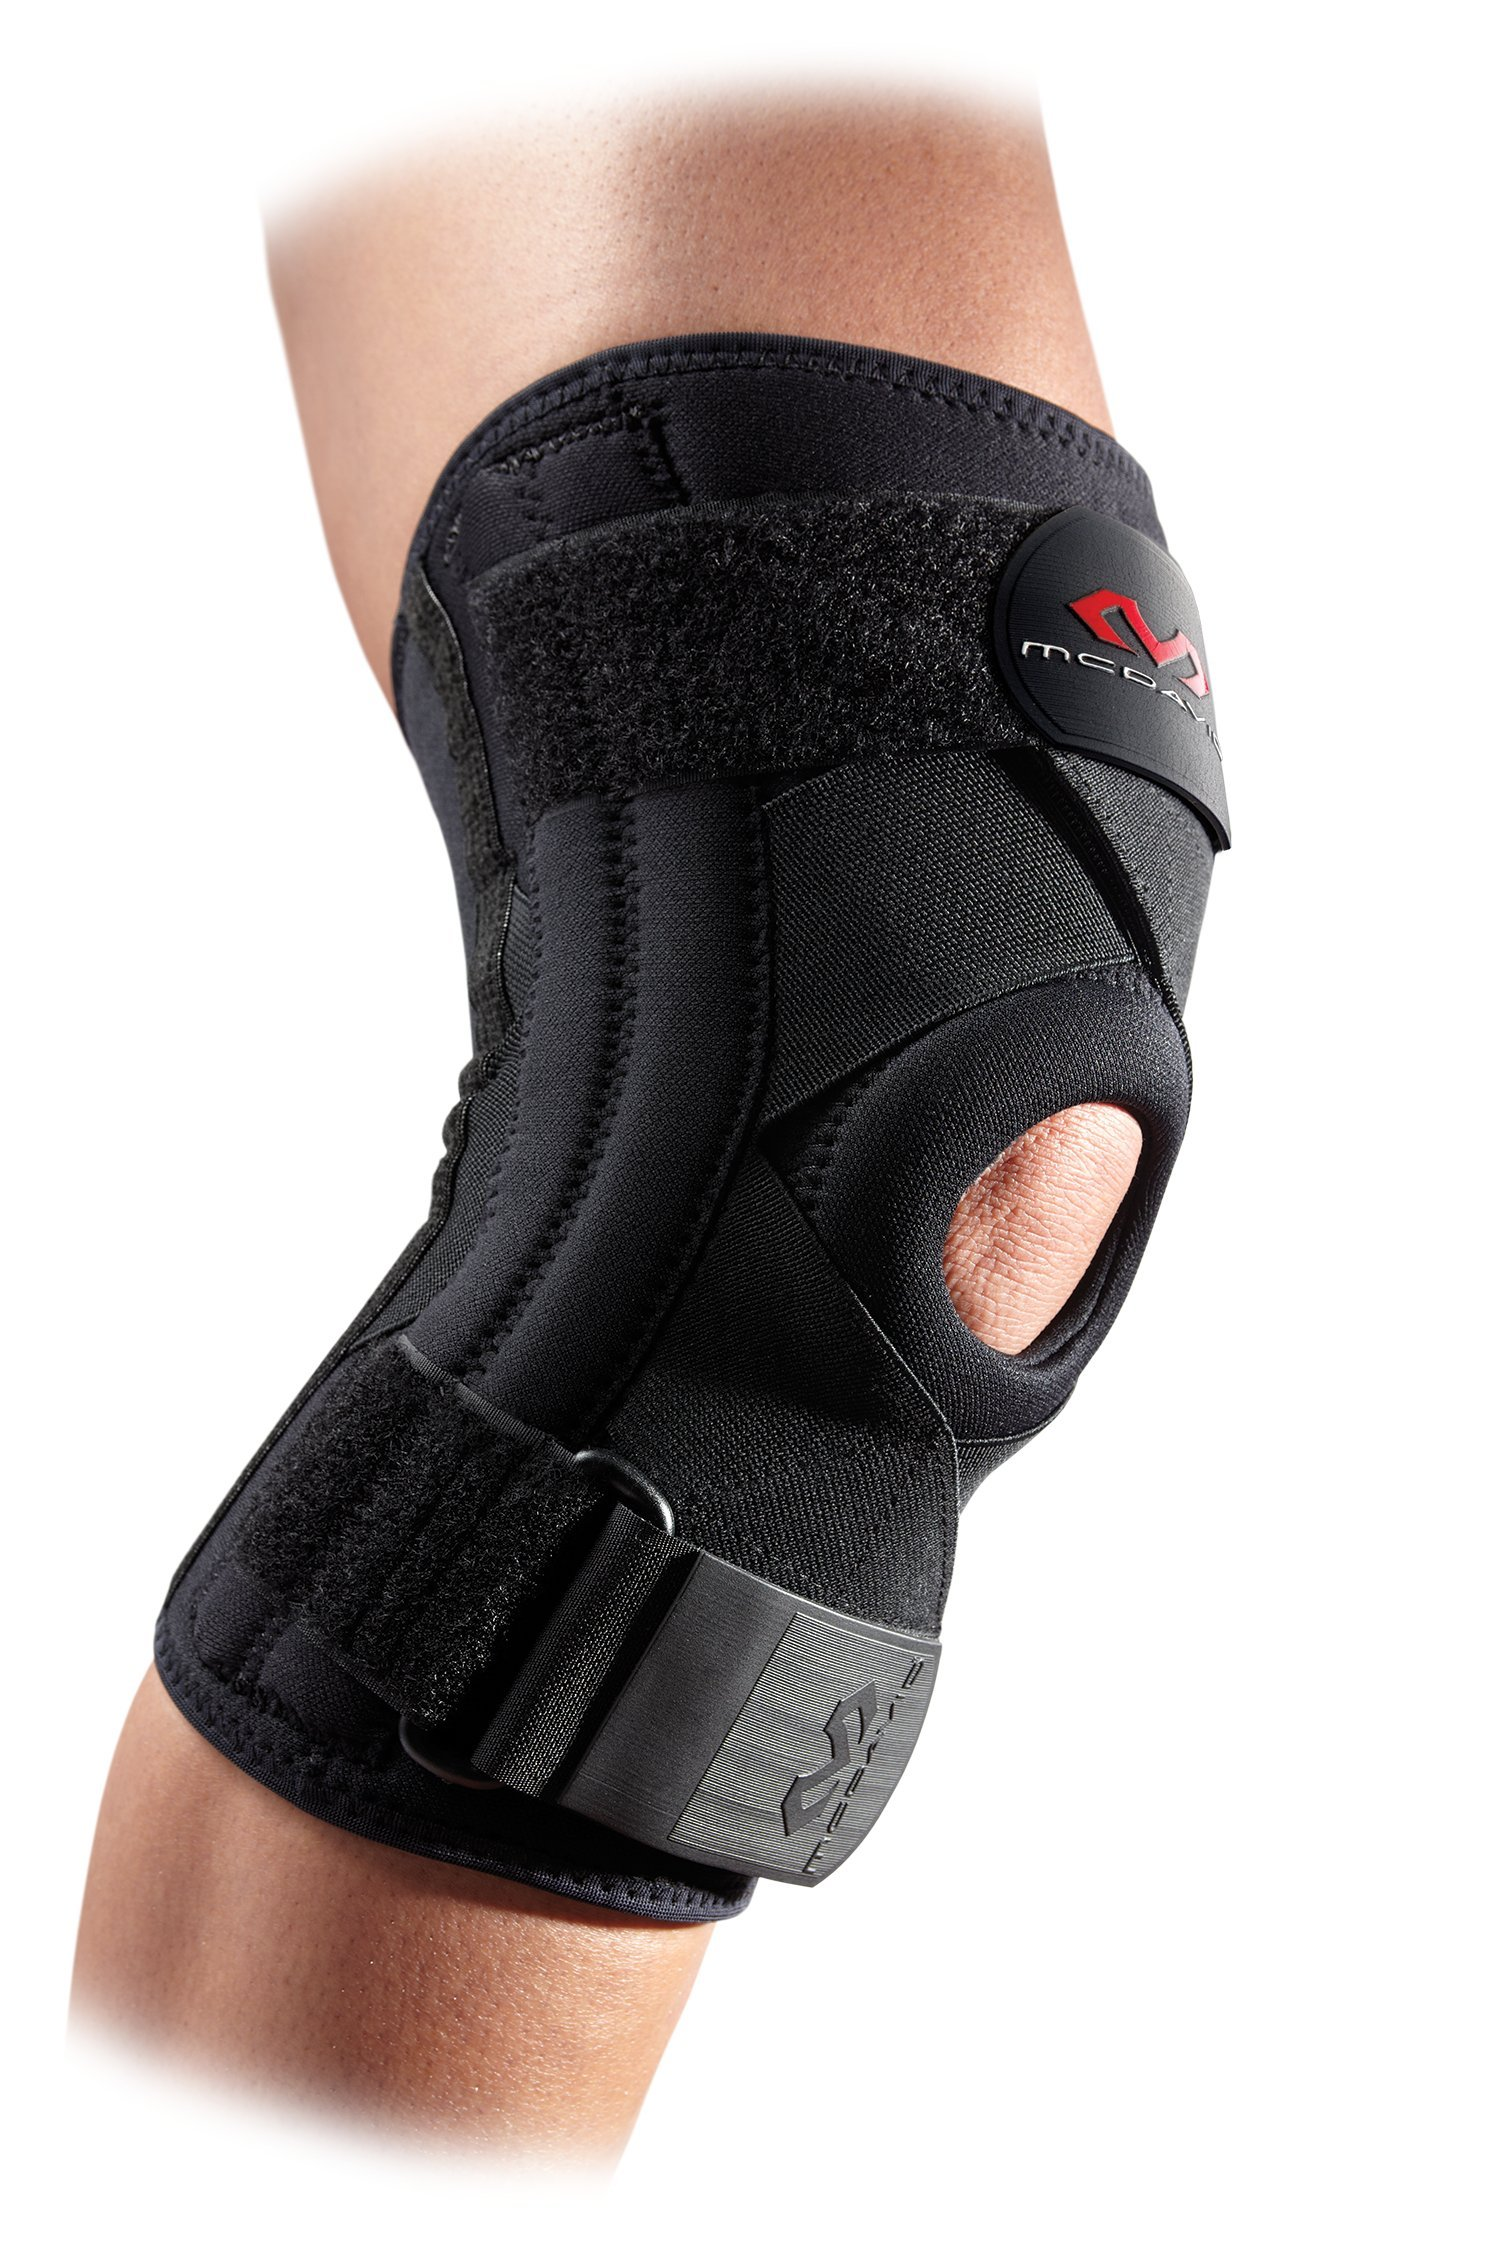 Injury Recovery /& Prevention from Minor to Moderate Injuries McDavid Knee Brace Compression Sleeve w//Knee Wrap Support /& Side Stays Knee Stabilizer for Pain Relief for Men /& Women